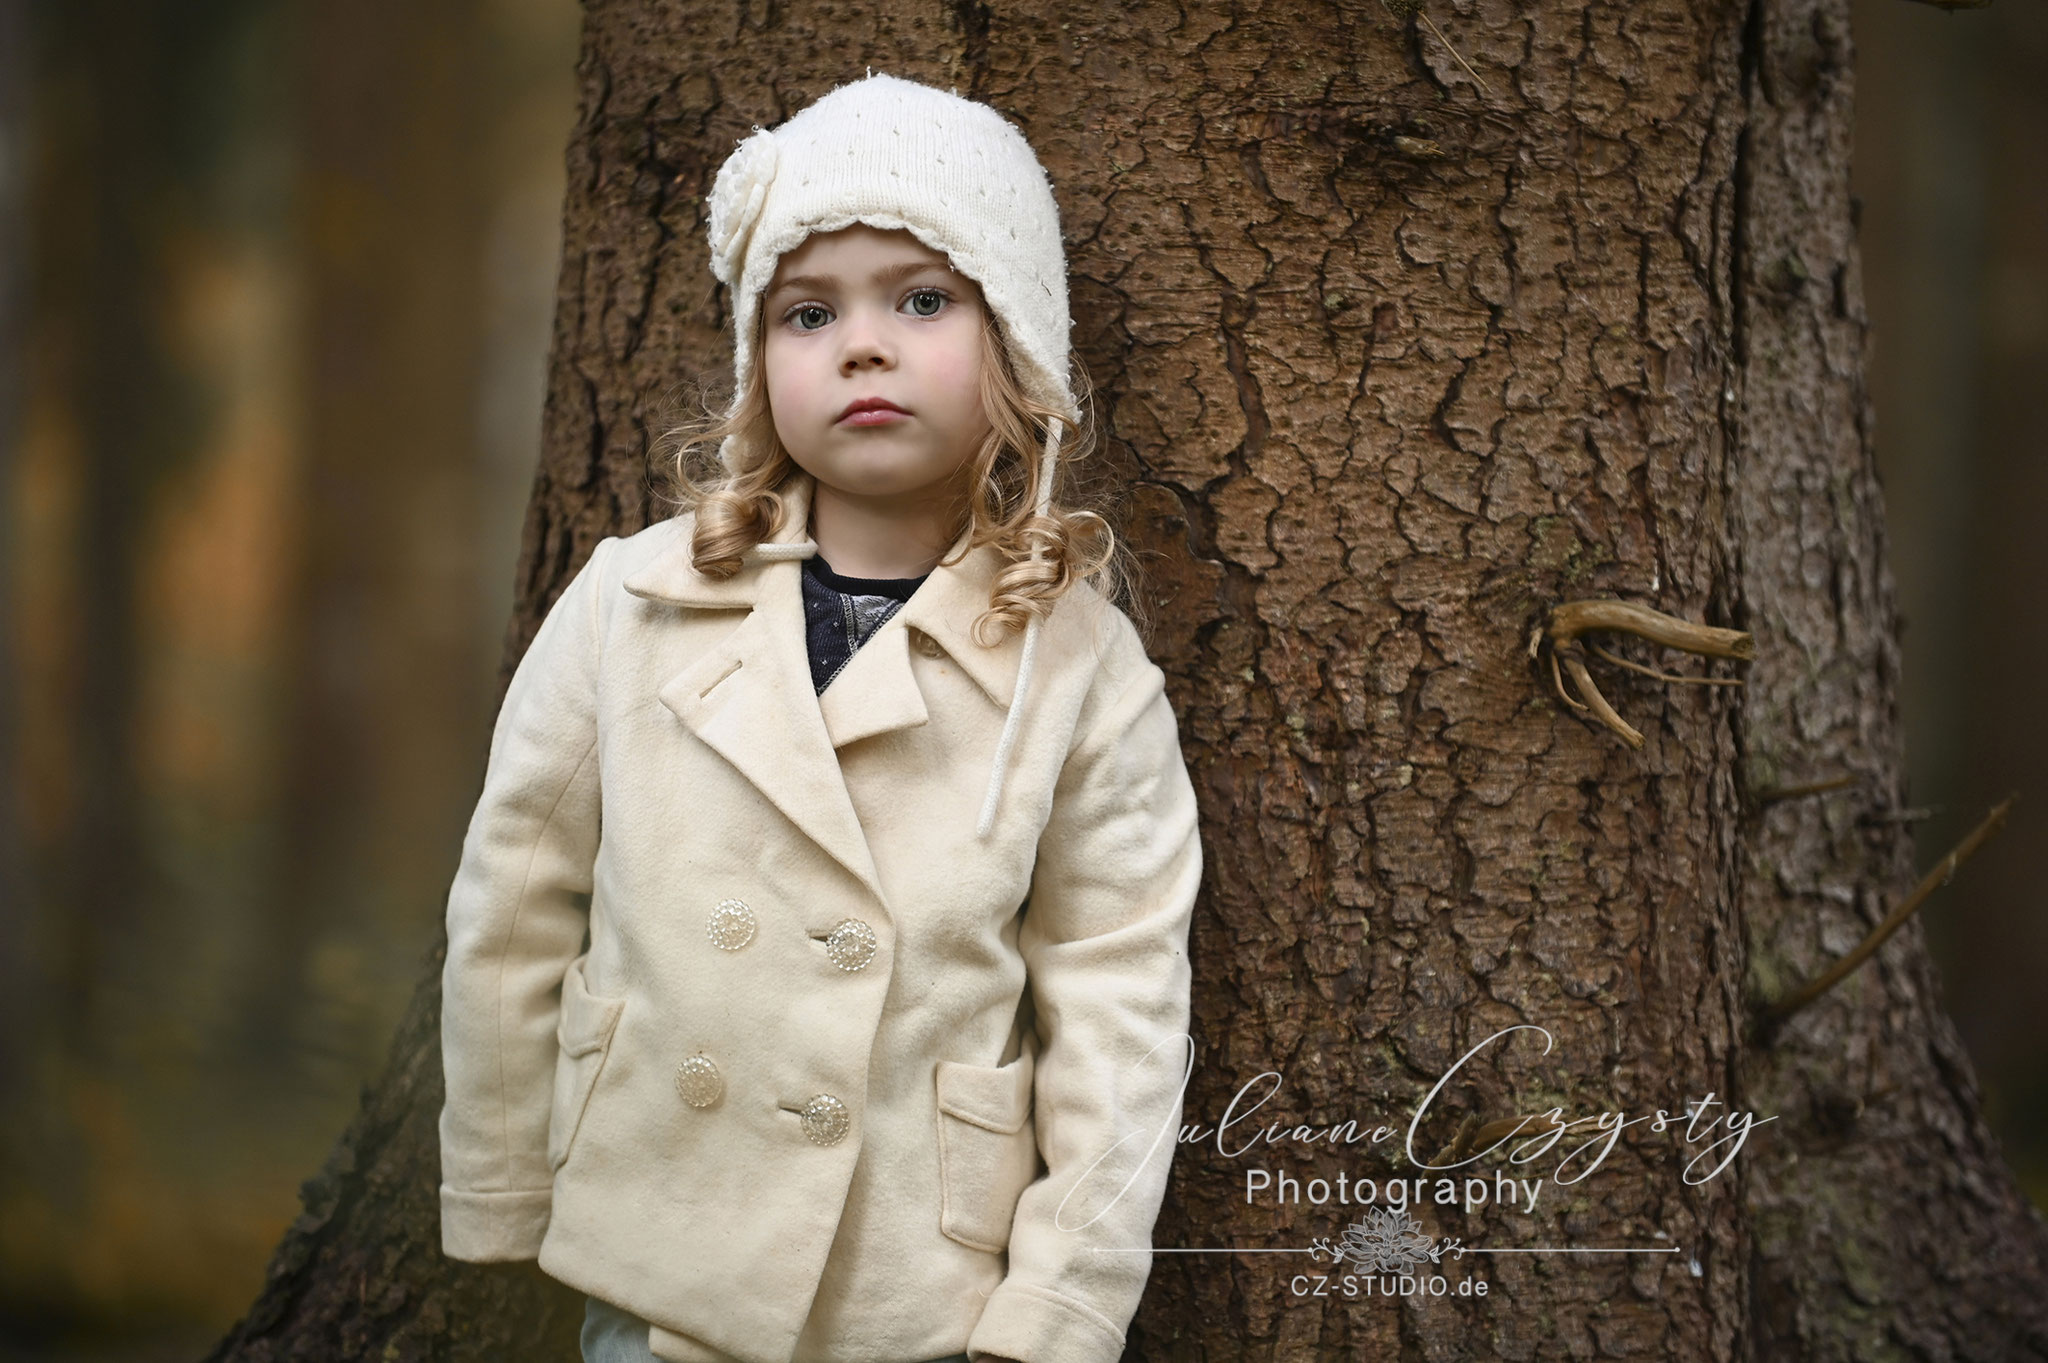 Outdoor Kinder Portraits - Juliane Czysty